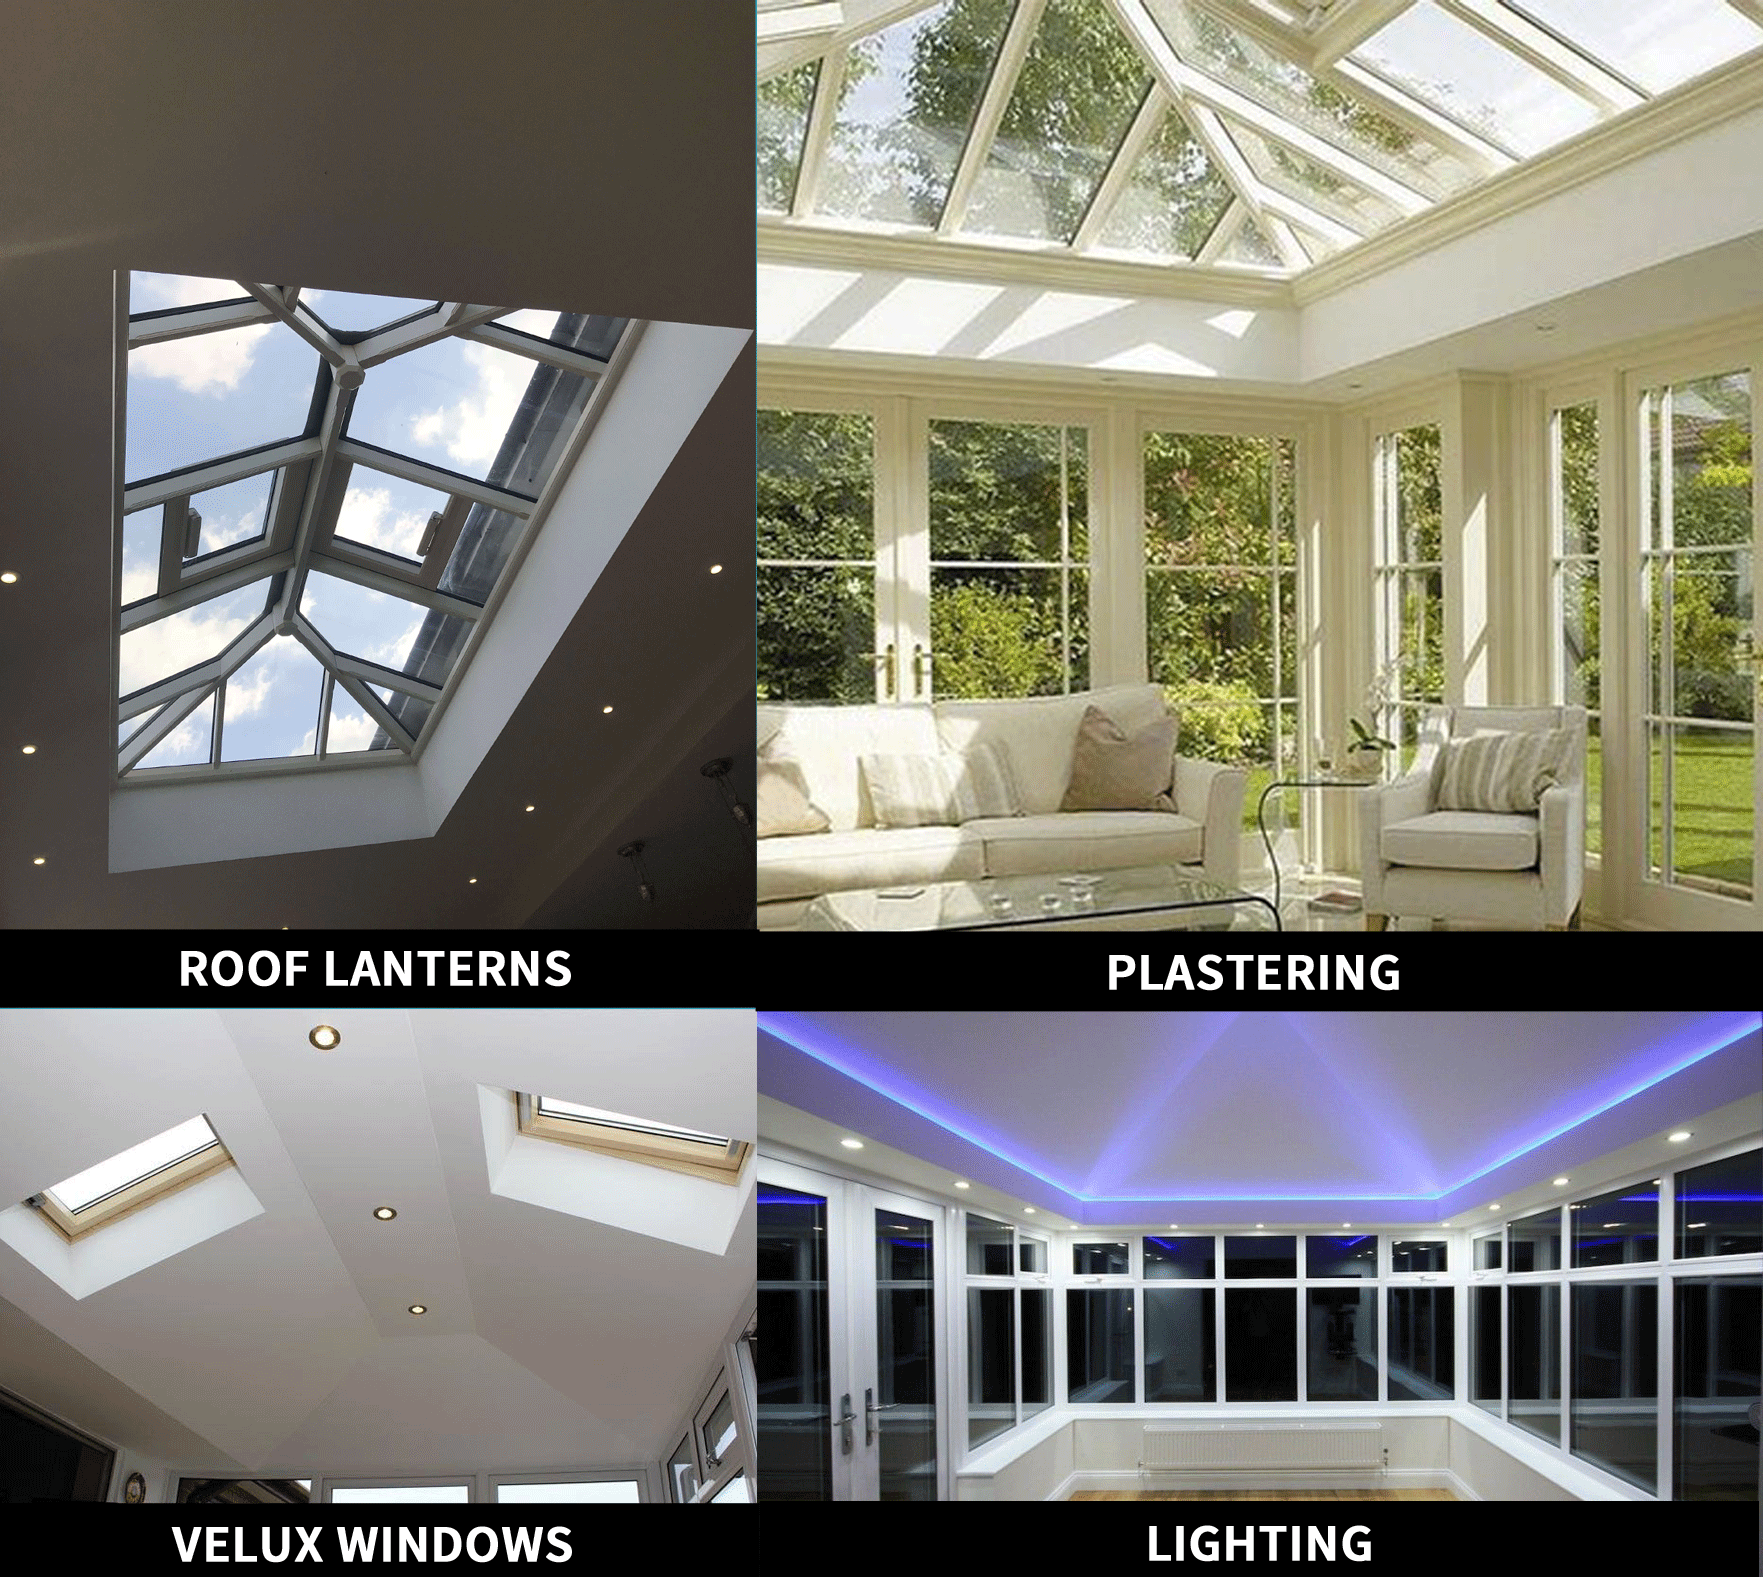 ROOFING-EXTRA-IMAGE.png